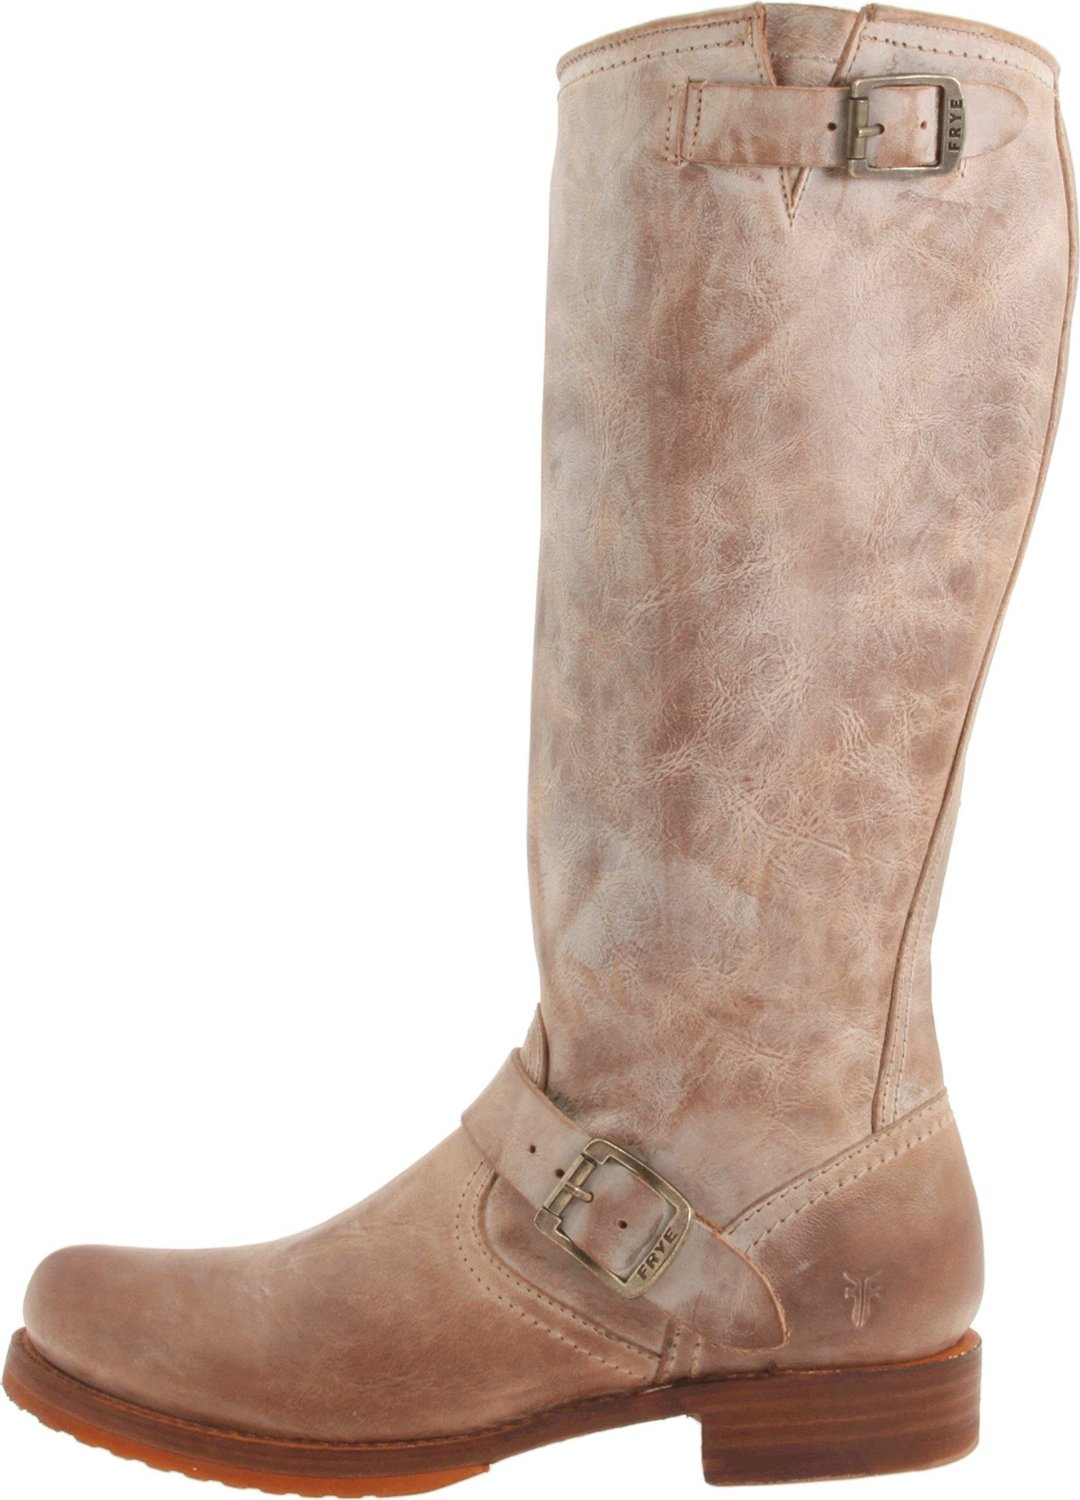 Twisted Sisters boutik: spring frye boots